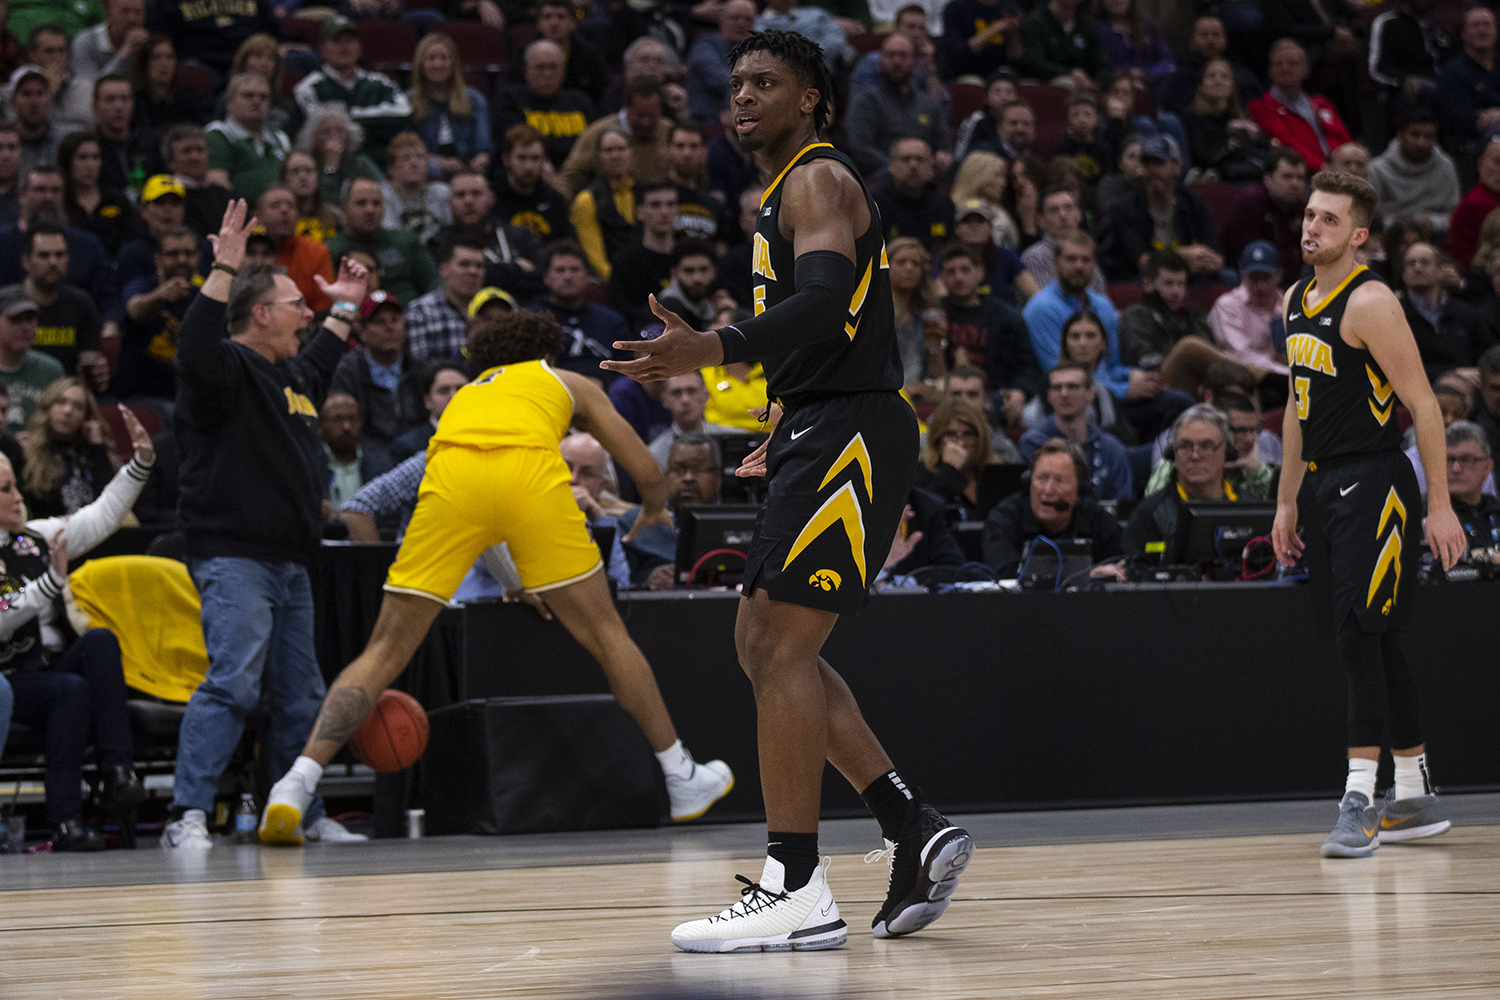 Iowa+forward+Tyler+Cook+gestures+to+an+official+after+a+call+during+the+Iowa%2FMichigan+Big+Ten+Tournament+men%27s+basketball+game+in+the+United+Center+in+Chicago+on+Friday%2C+March+15%2C+2019.+The+Wolverines+defeated+the+Hawkeyes%2C+74-53.+